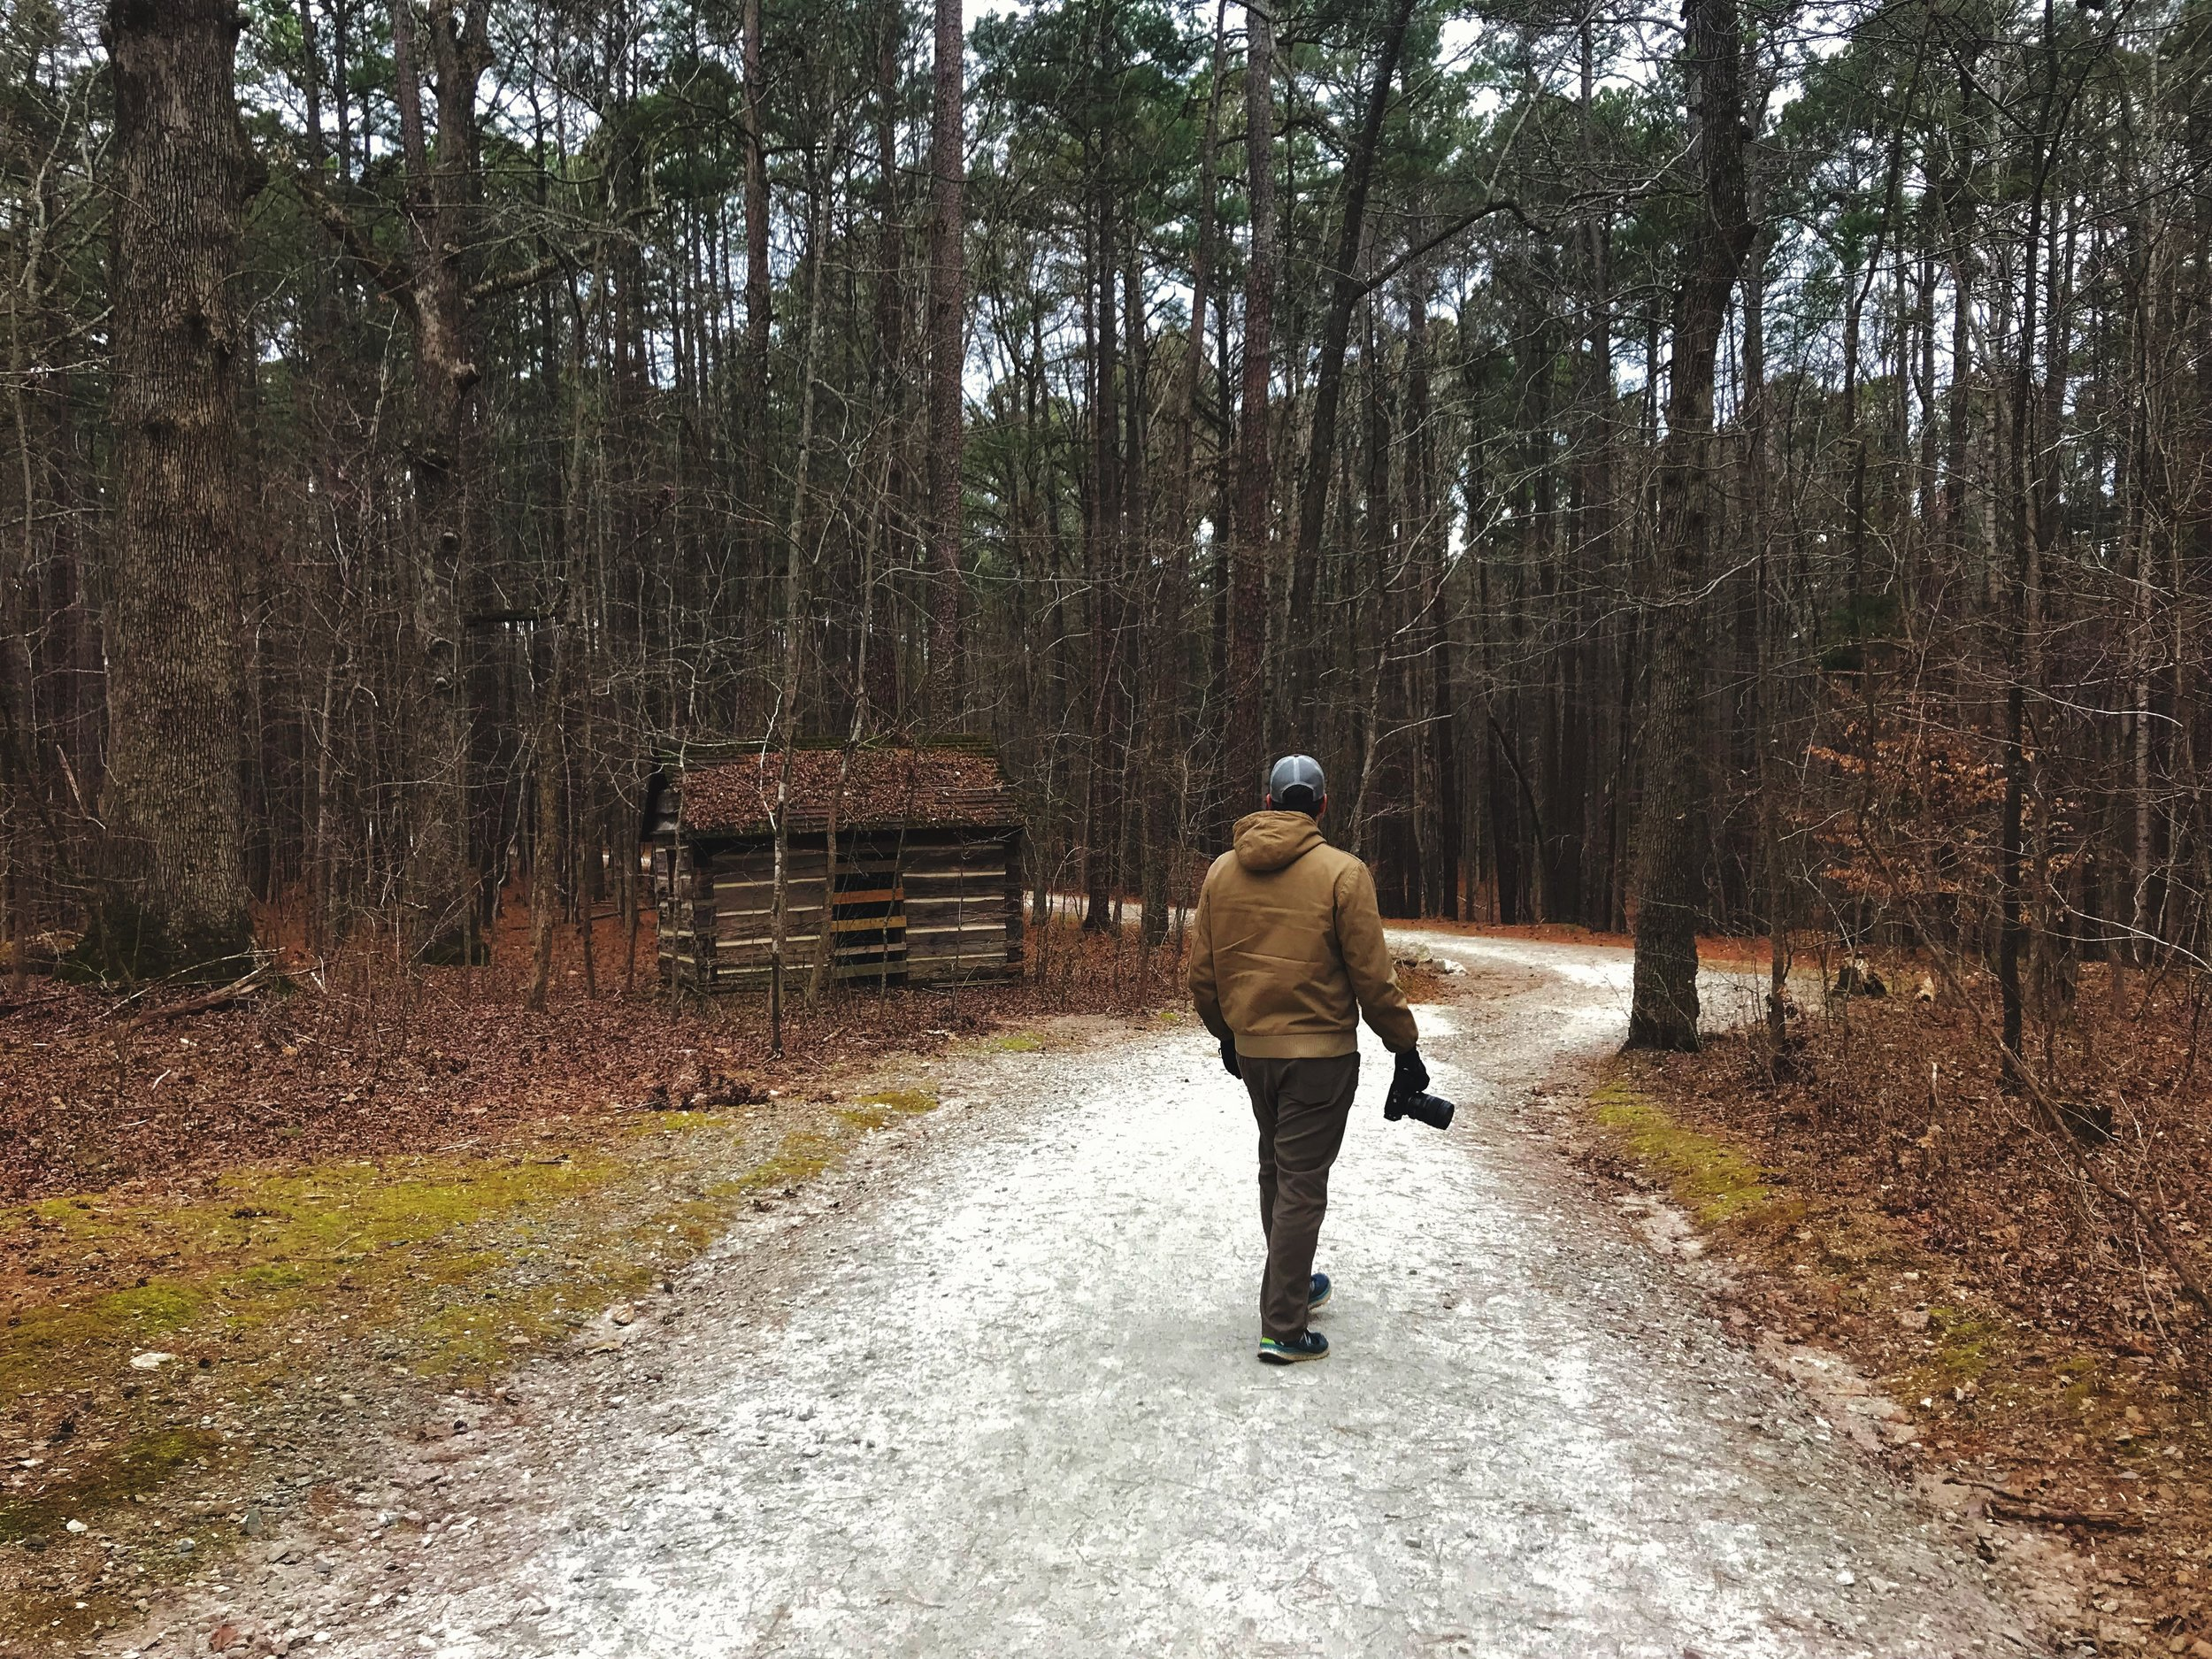 There are lots of interesting walking and biking trails to explore in William B. Umstead State Park.